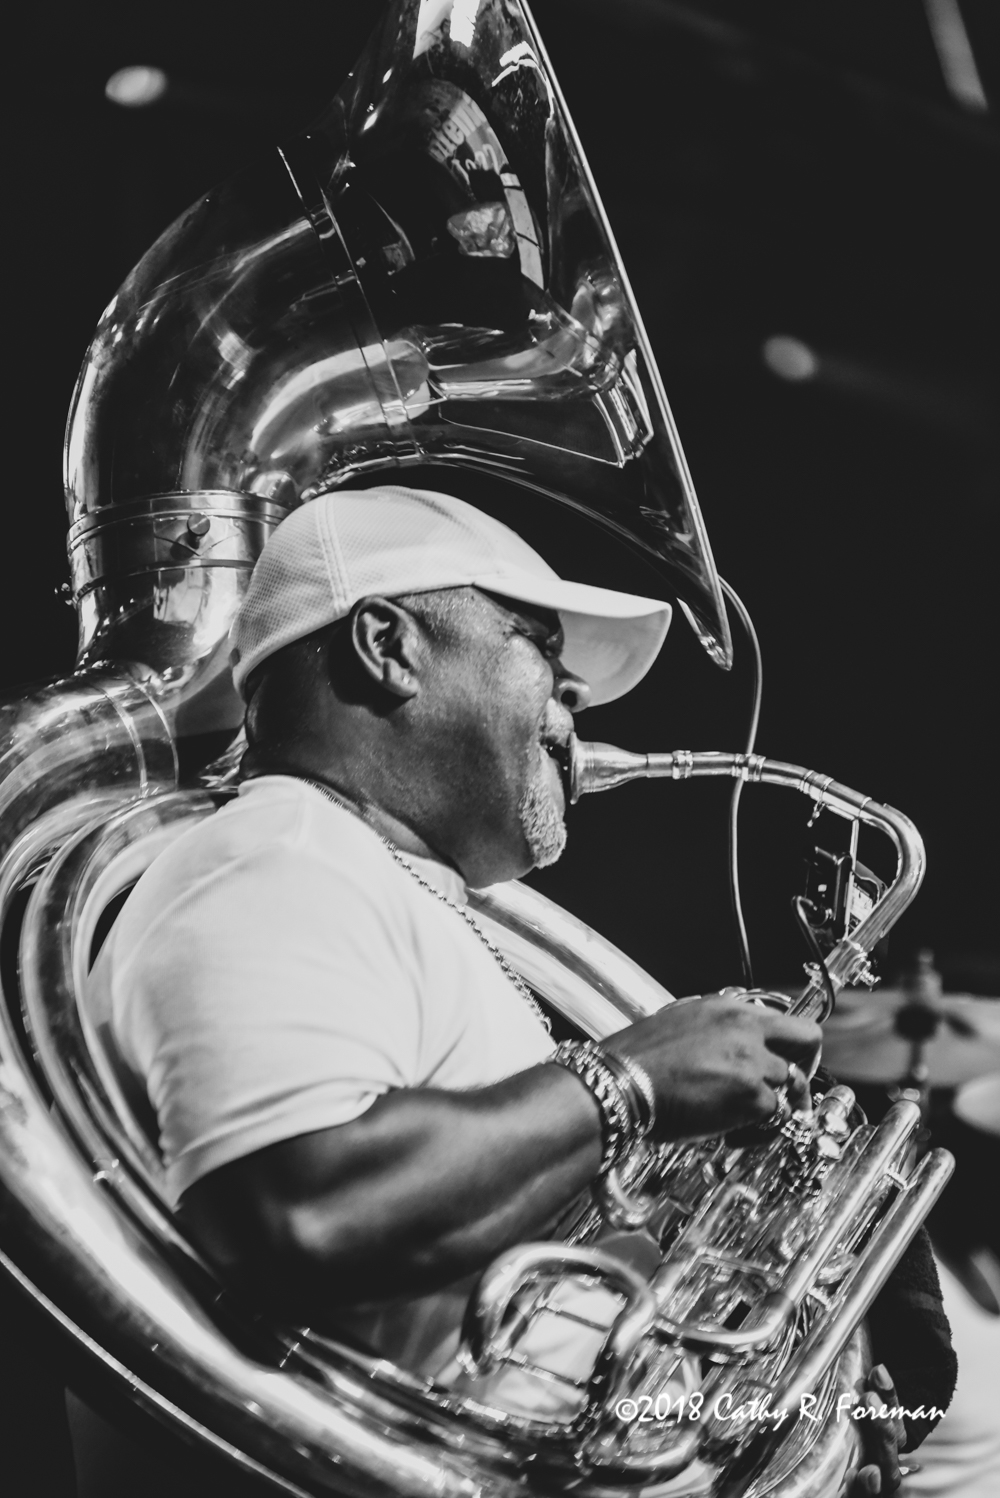 Kirk Joseph of the Dirty Dozen Brass Band on the Tuba | image by: Cathy R. Foreman